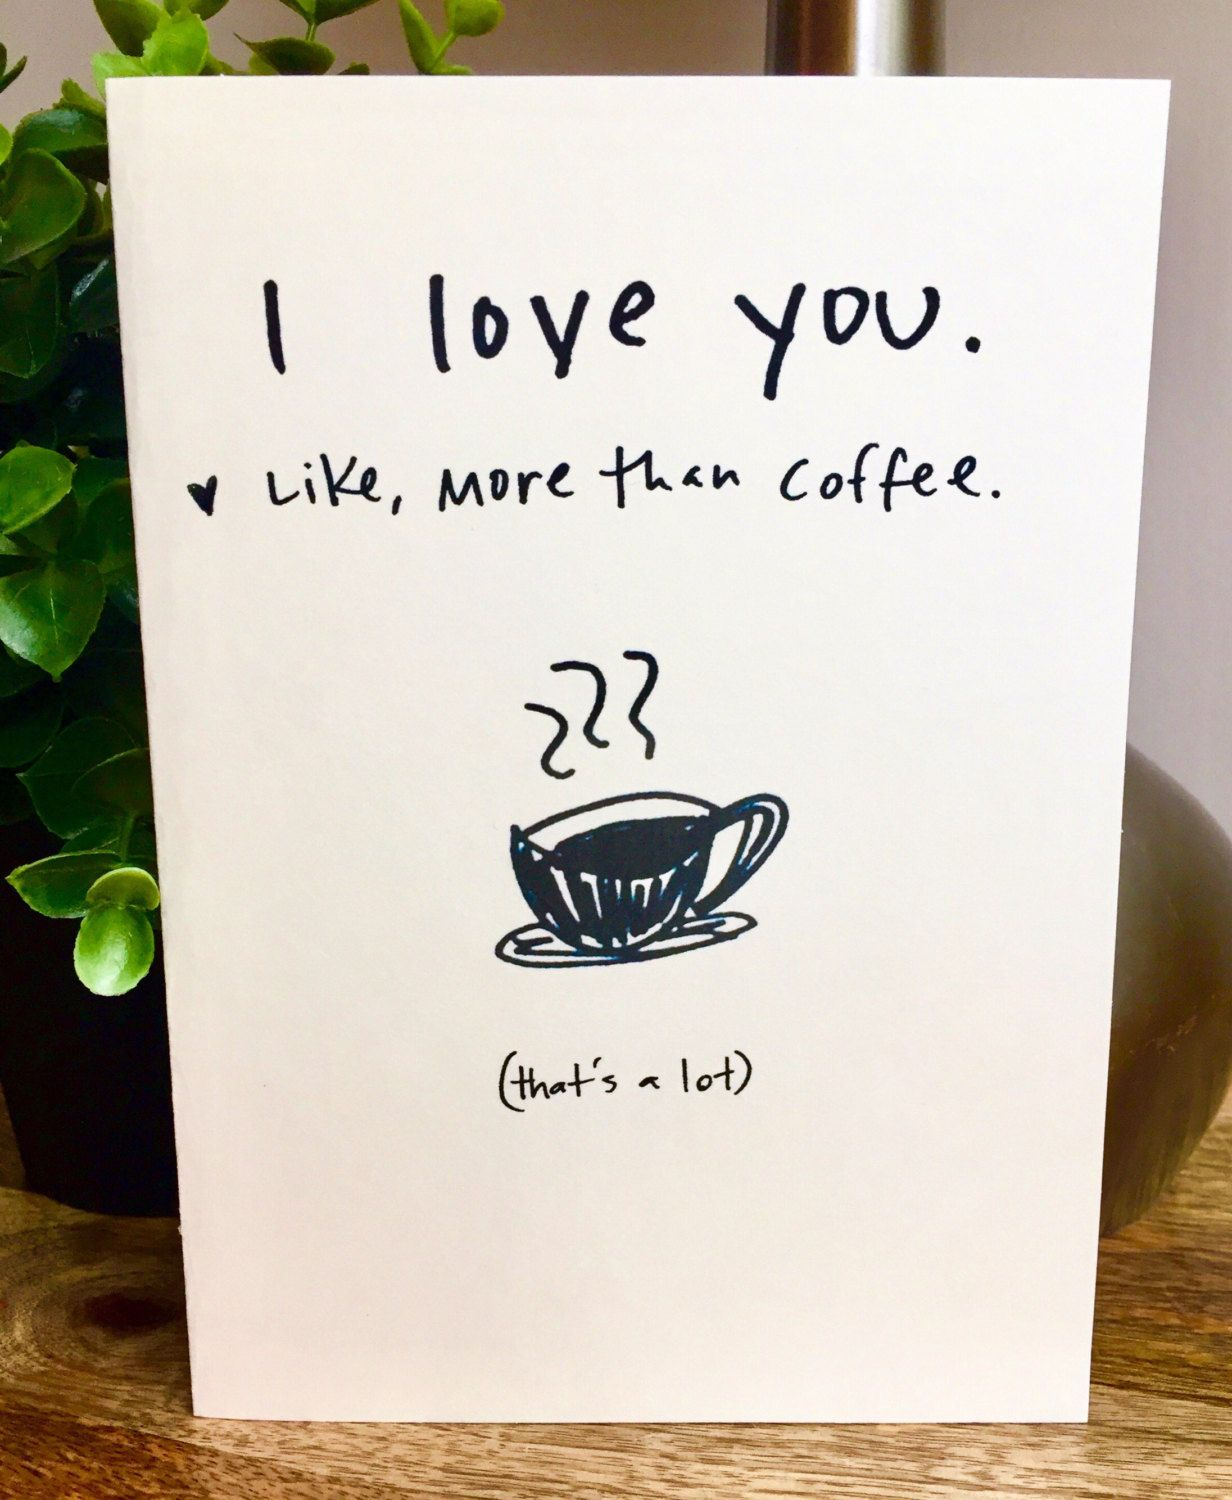 I Love You More Than Coffee Lover Card Handmade Funny Sidesandwich By SideSandwich